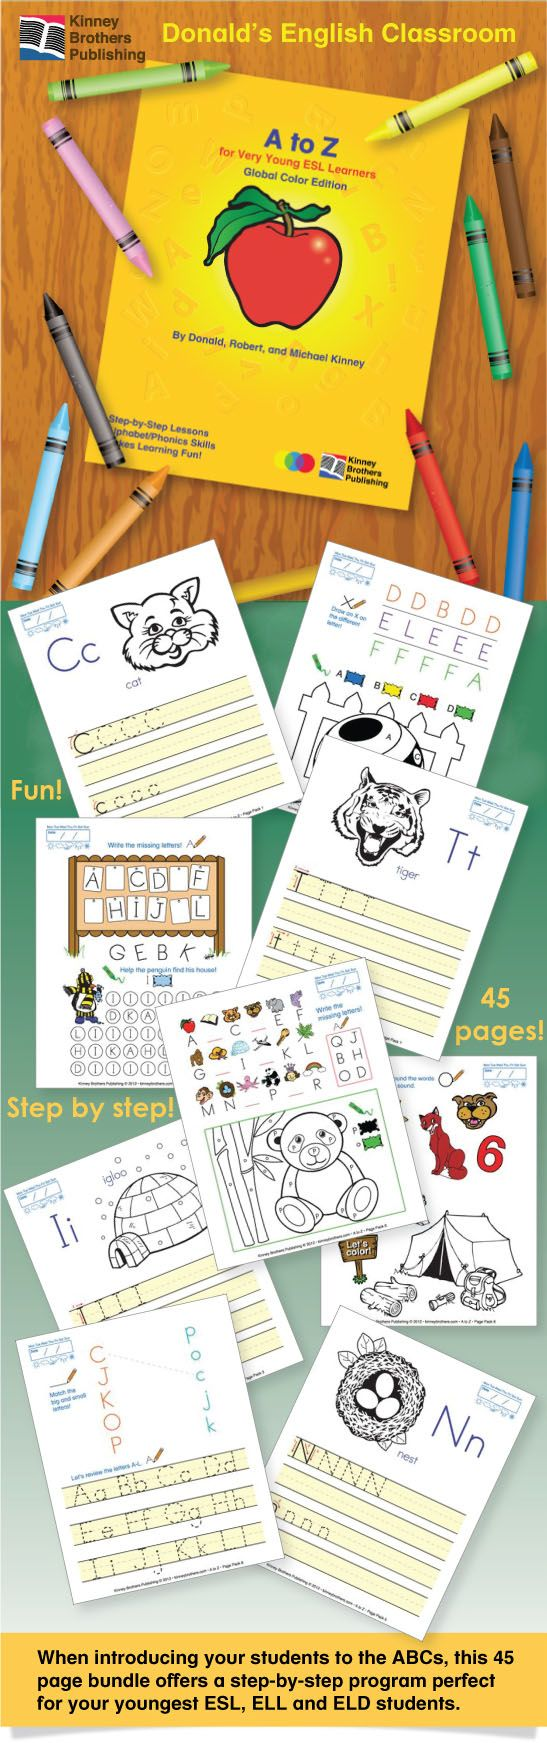 A to Z is an ABC primer for your youngest ESL students. 45 colorful pages give students plenty of practice writing the upper and lower case alphabet. Also included are easy mazes, dot-to-dot puzzles, songs, and matching exercise pages. If your kids are just learning how to hold a pencil, this is the perfect primer to introduce the English alphabet.  $4.50 on TpT  #ESL #EFL #ELL